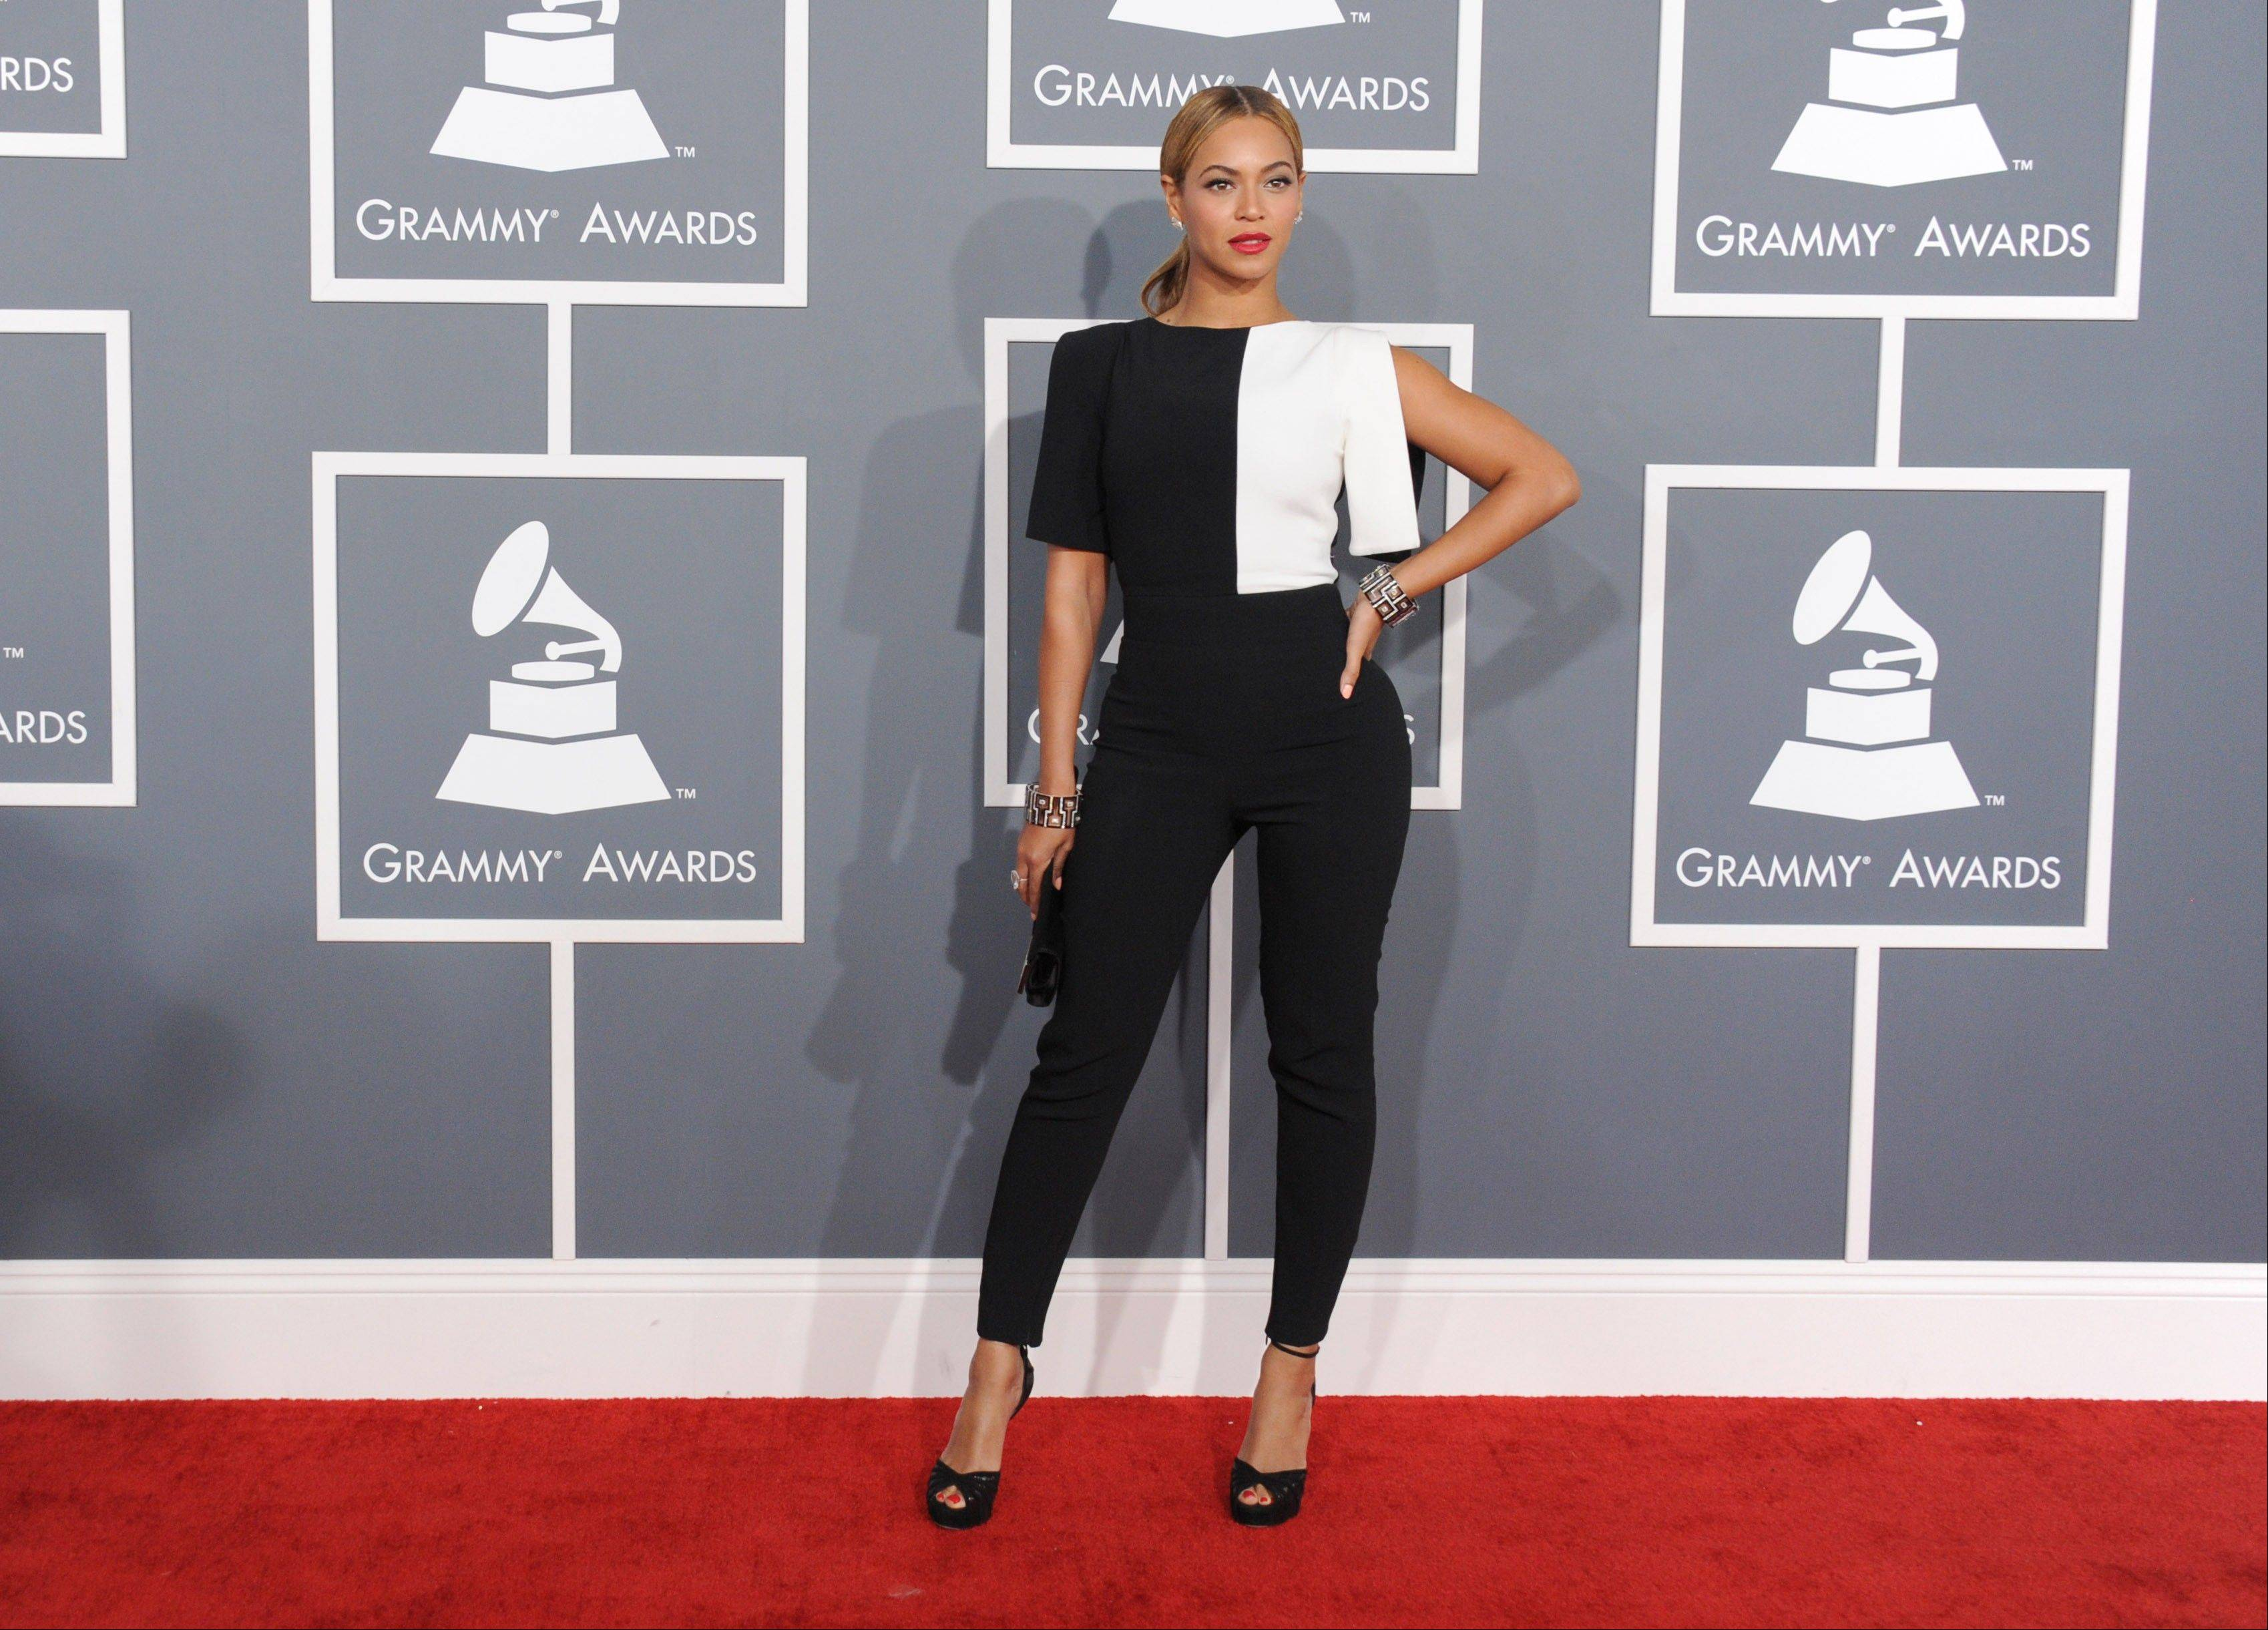 Beyonce arrives at the 55th annual Grammy Awards on Sunday, Feb. 10, 2013, in Los Angeles.